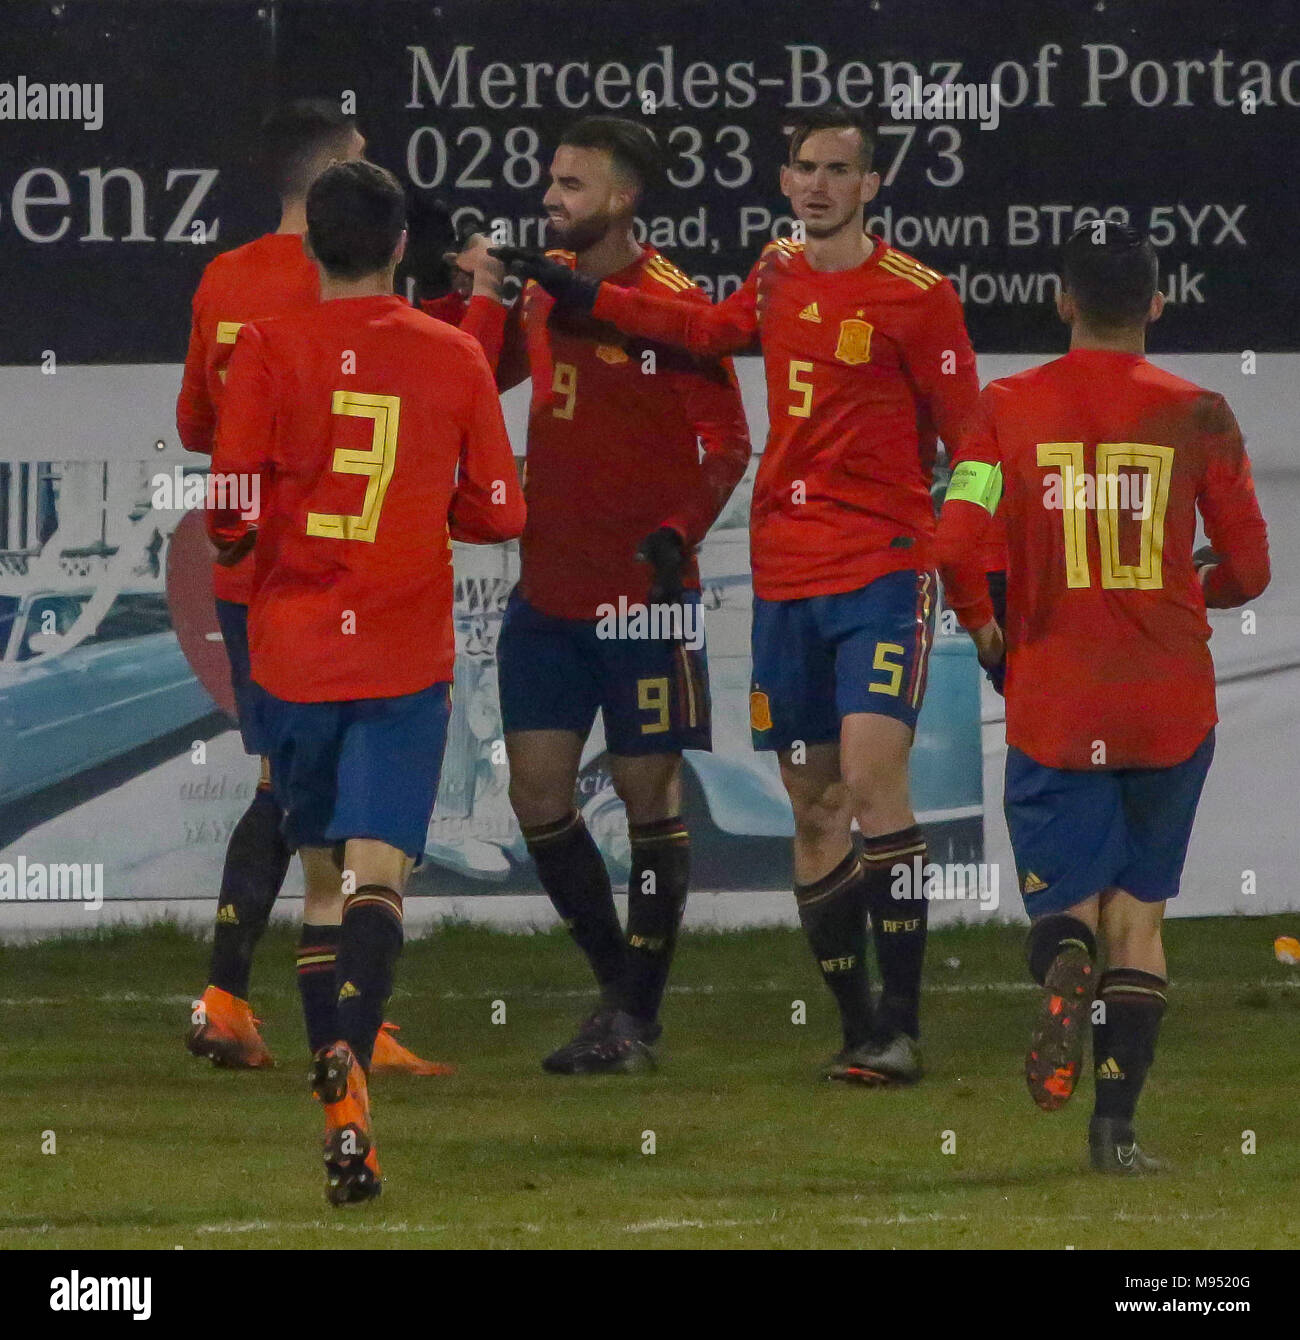 Shamrock Park, Portadown, Northern Ireland UK. 22 March 2018. International football - 2019 UEFA Under 21 Championship Qualifier - Group 2 - Northern Ireland v Spain. Borja Mayoral (9) celebrates his hat-trick for Spain. David Hunter/Alamy Live News. - Stock Image